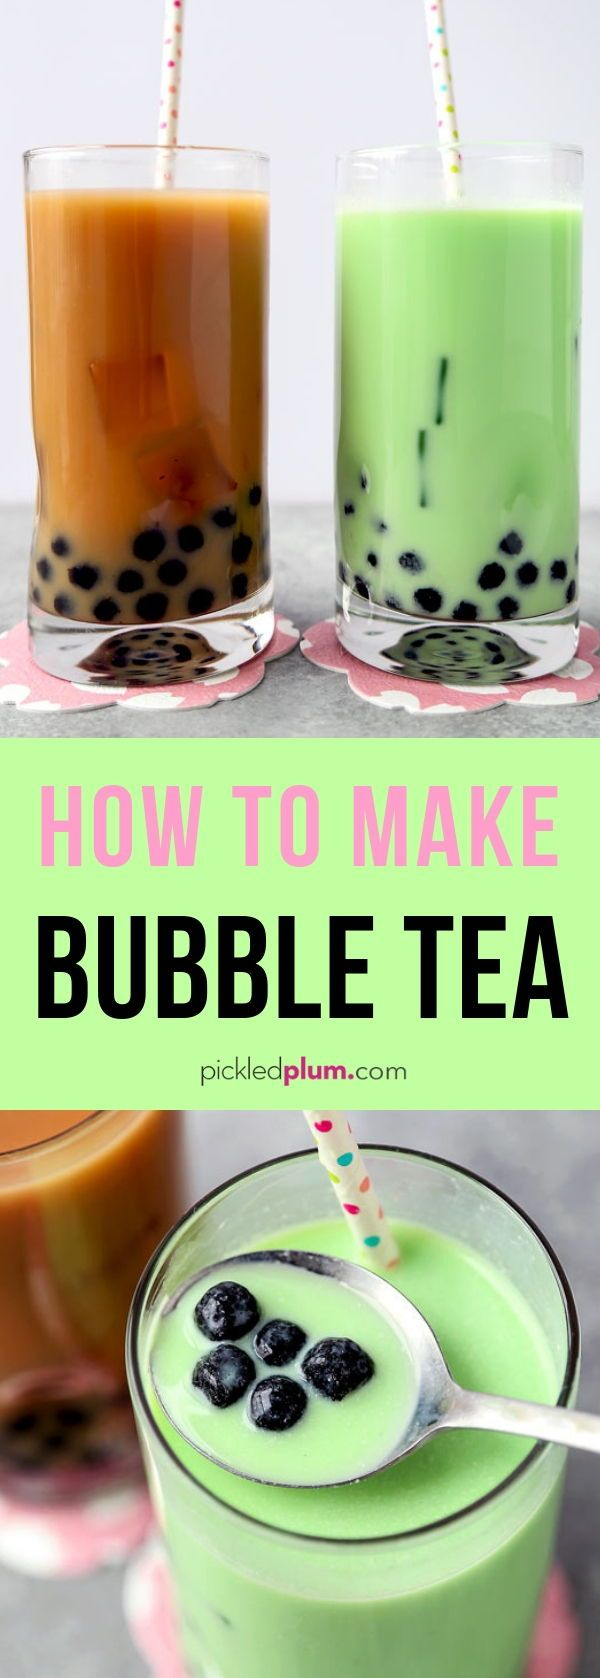 How to Make Bubble Tea in 10 Minutes - Pickled Plum Food And Drinks #teashops